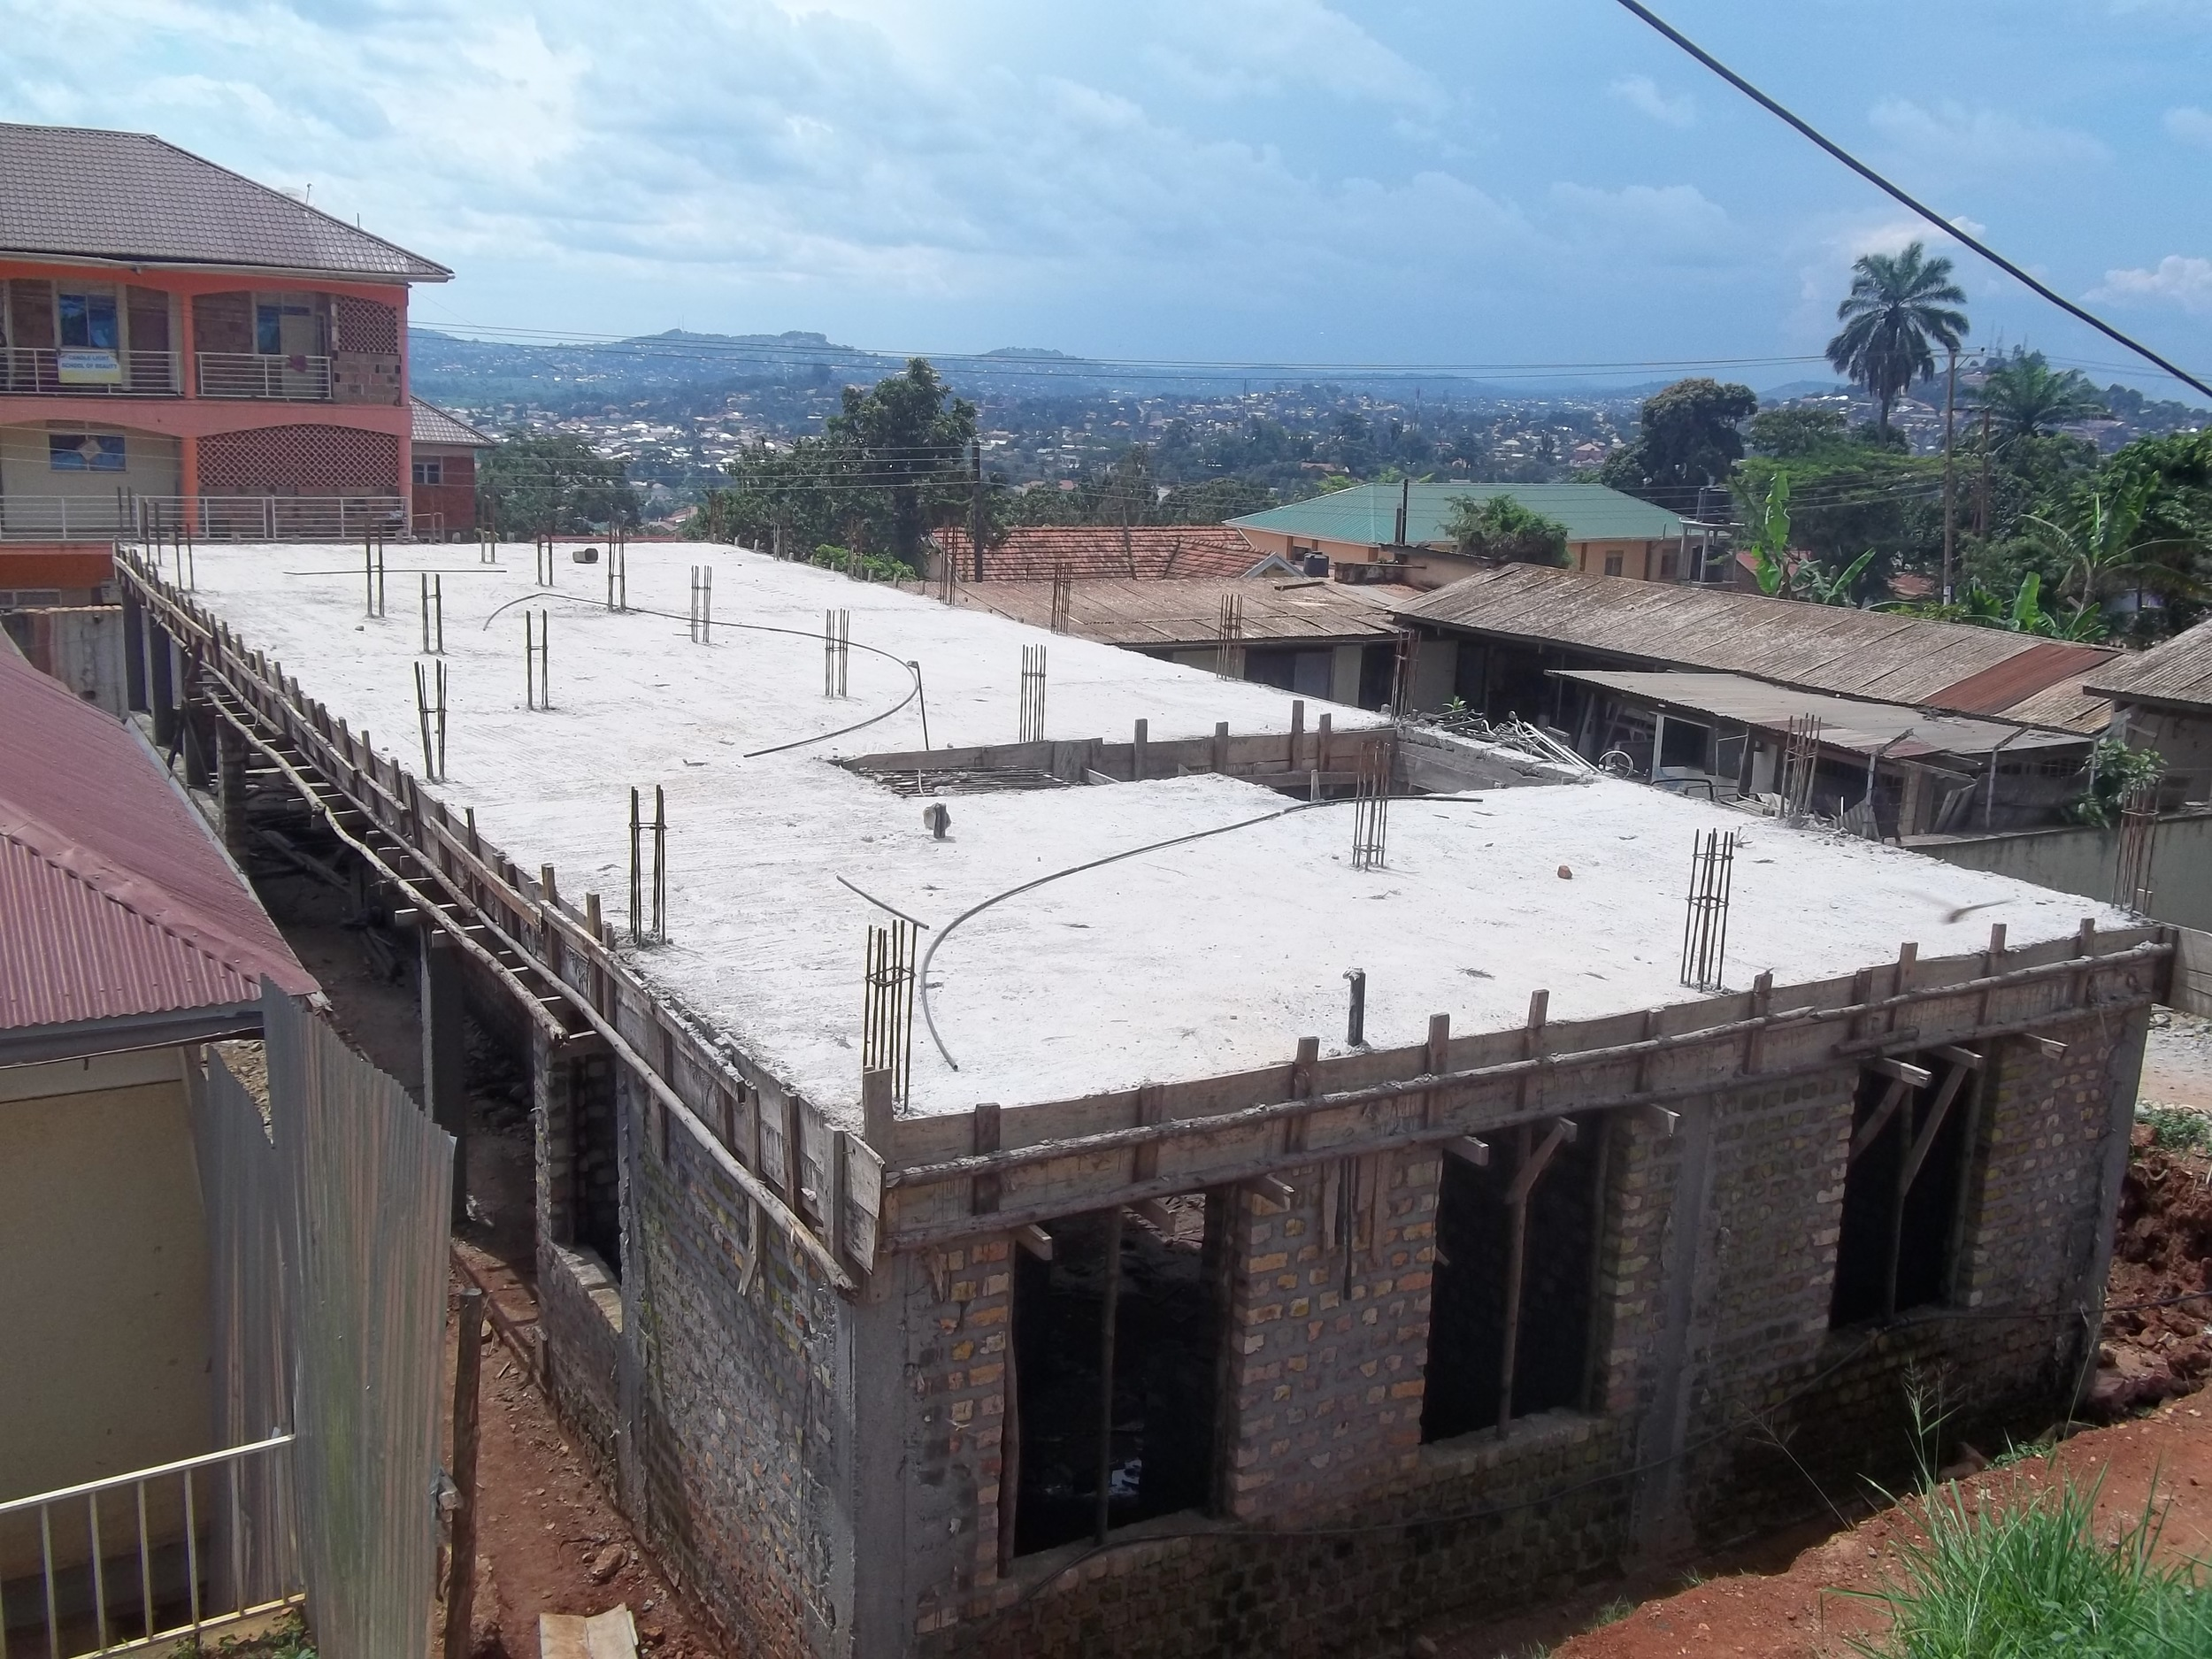 Construction of the TB/HIV clinic